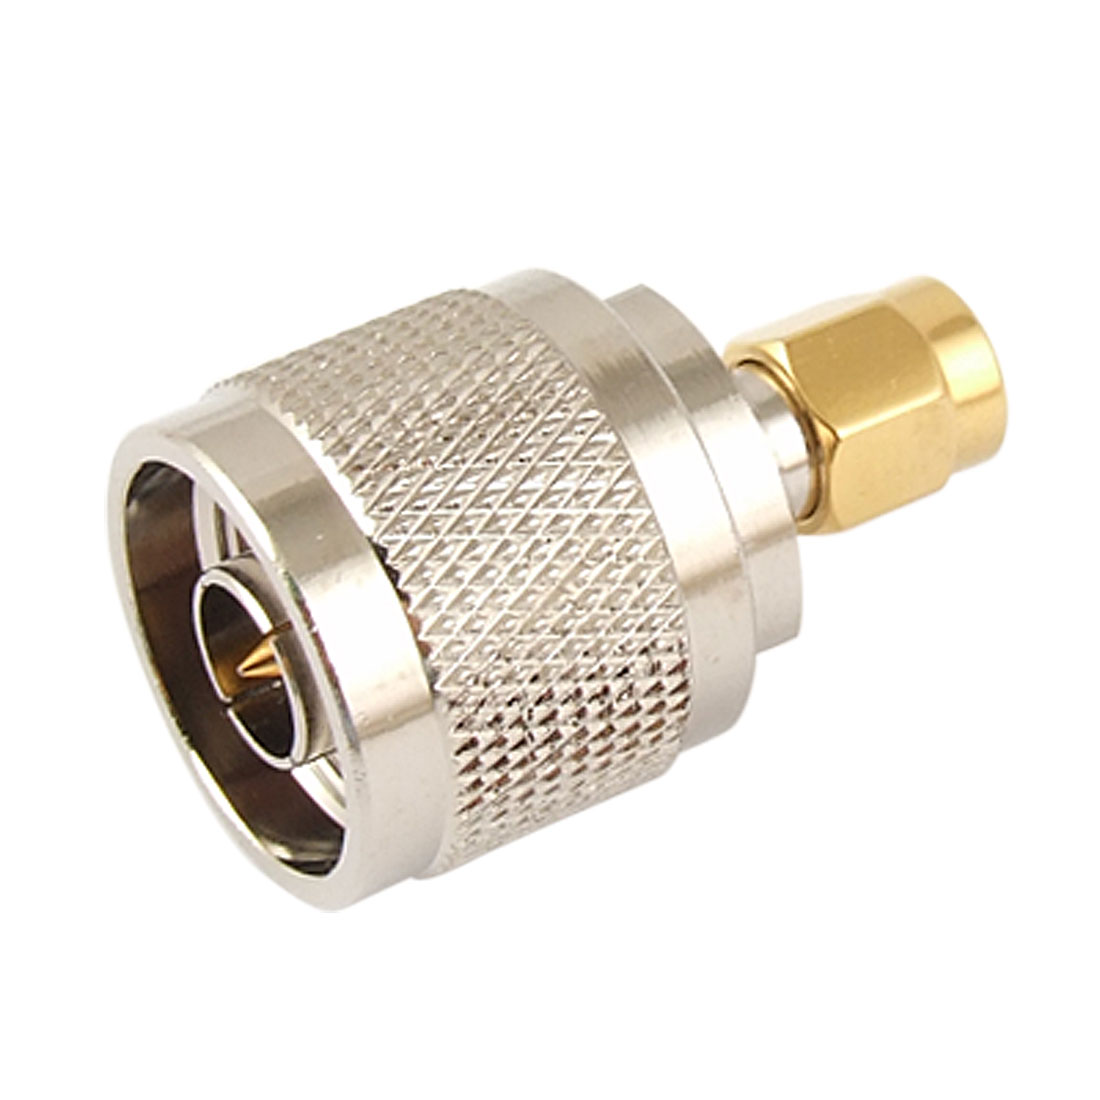 N Type male Connector to SMA Male Connector Straight RF Adapter Connector